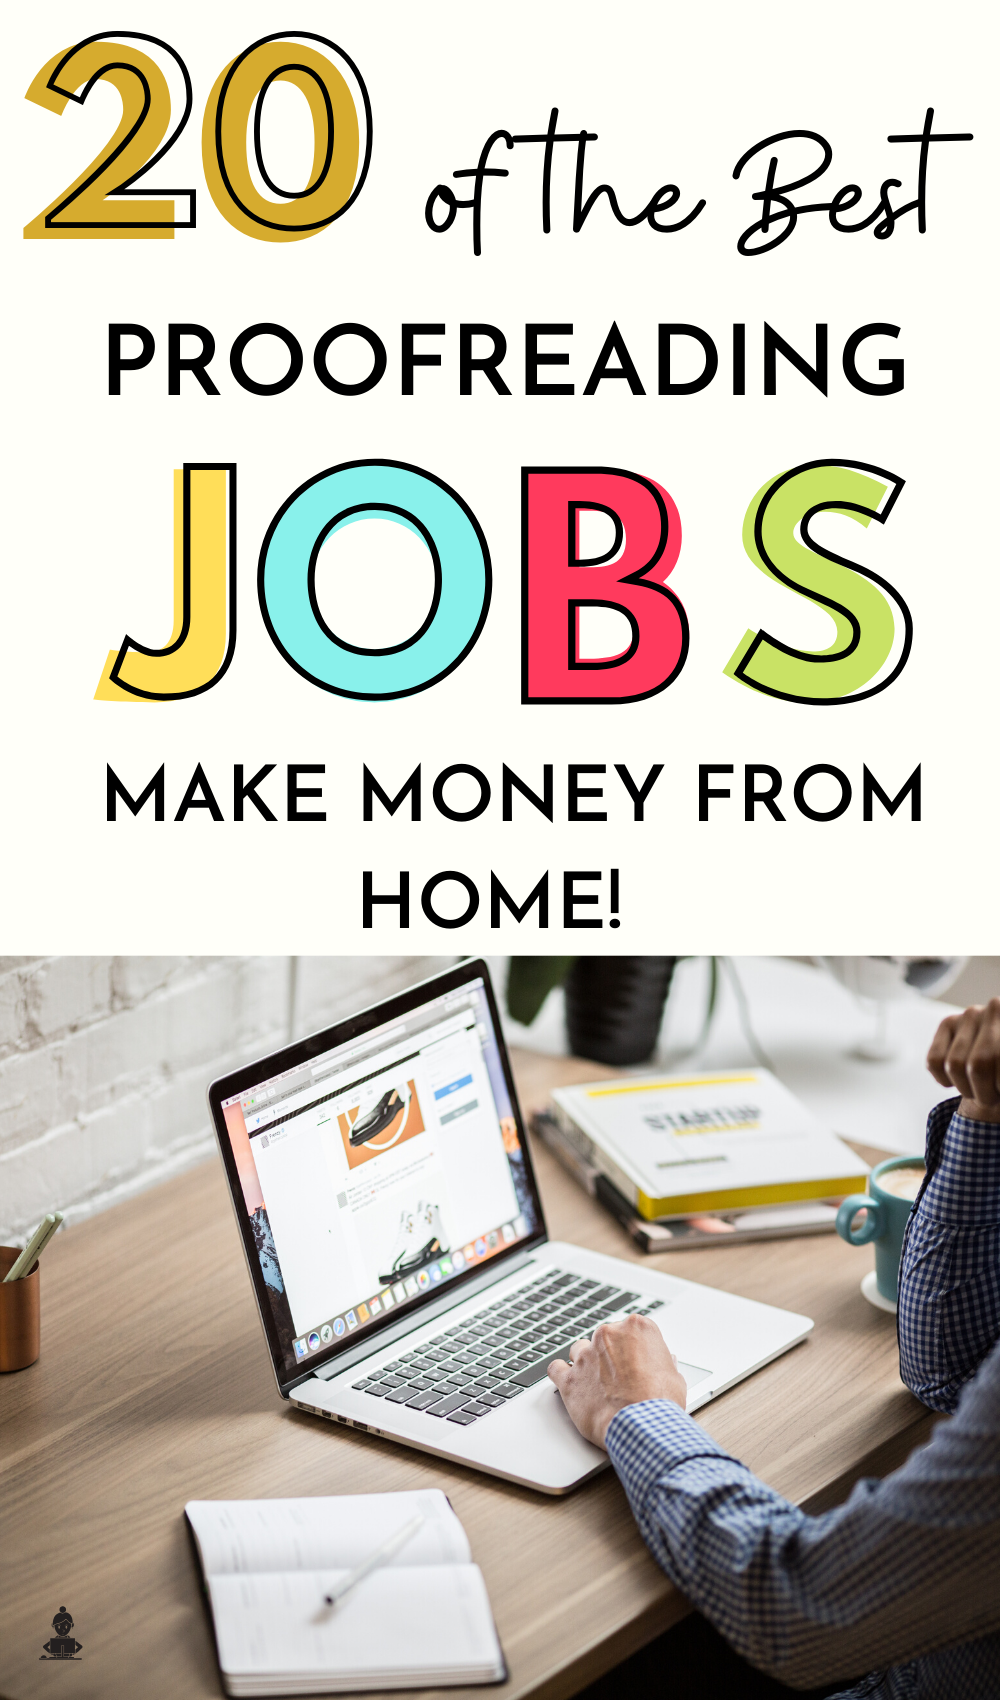 20 Online Proofreading Jobs for Beginners in 2020